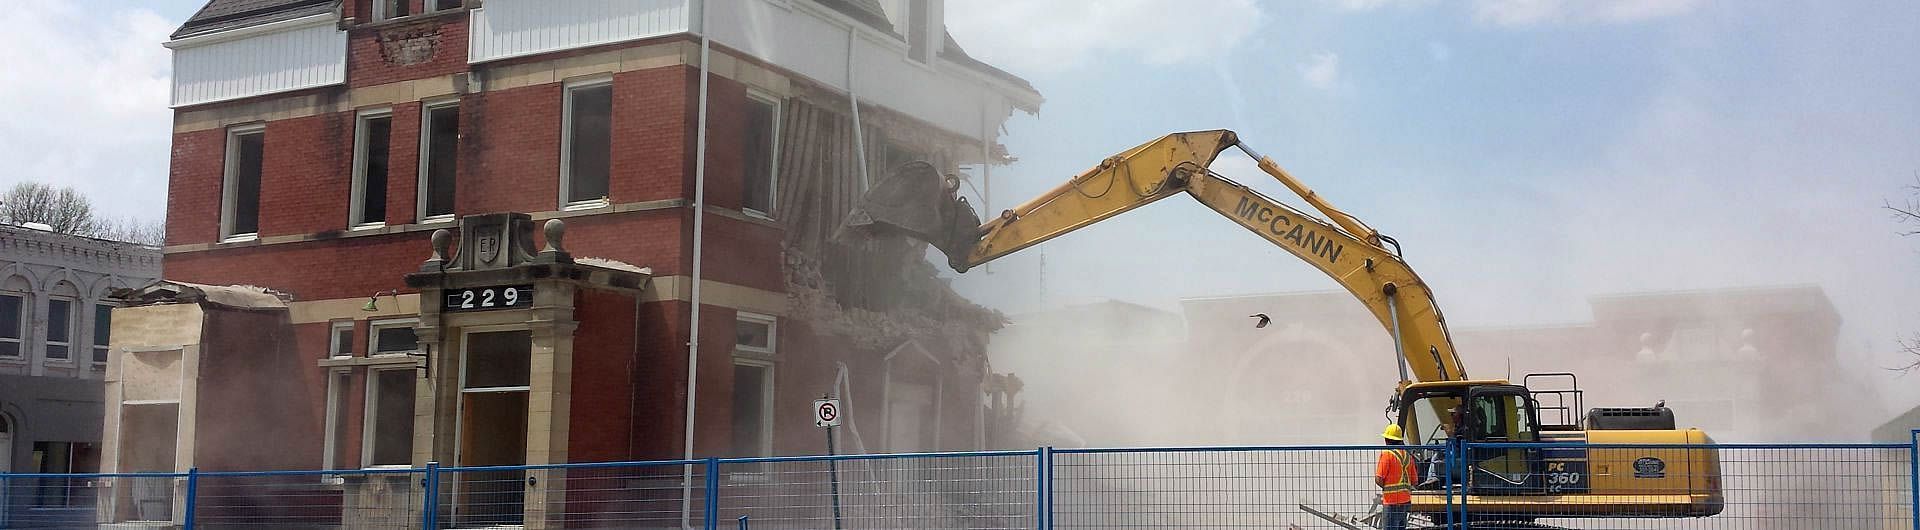 Municipal Building Demolition